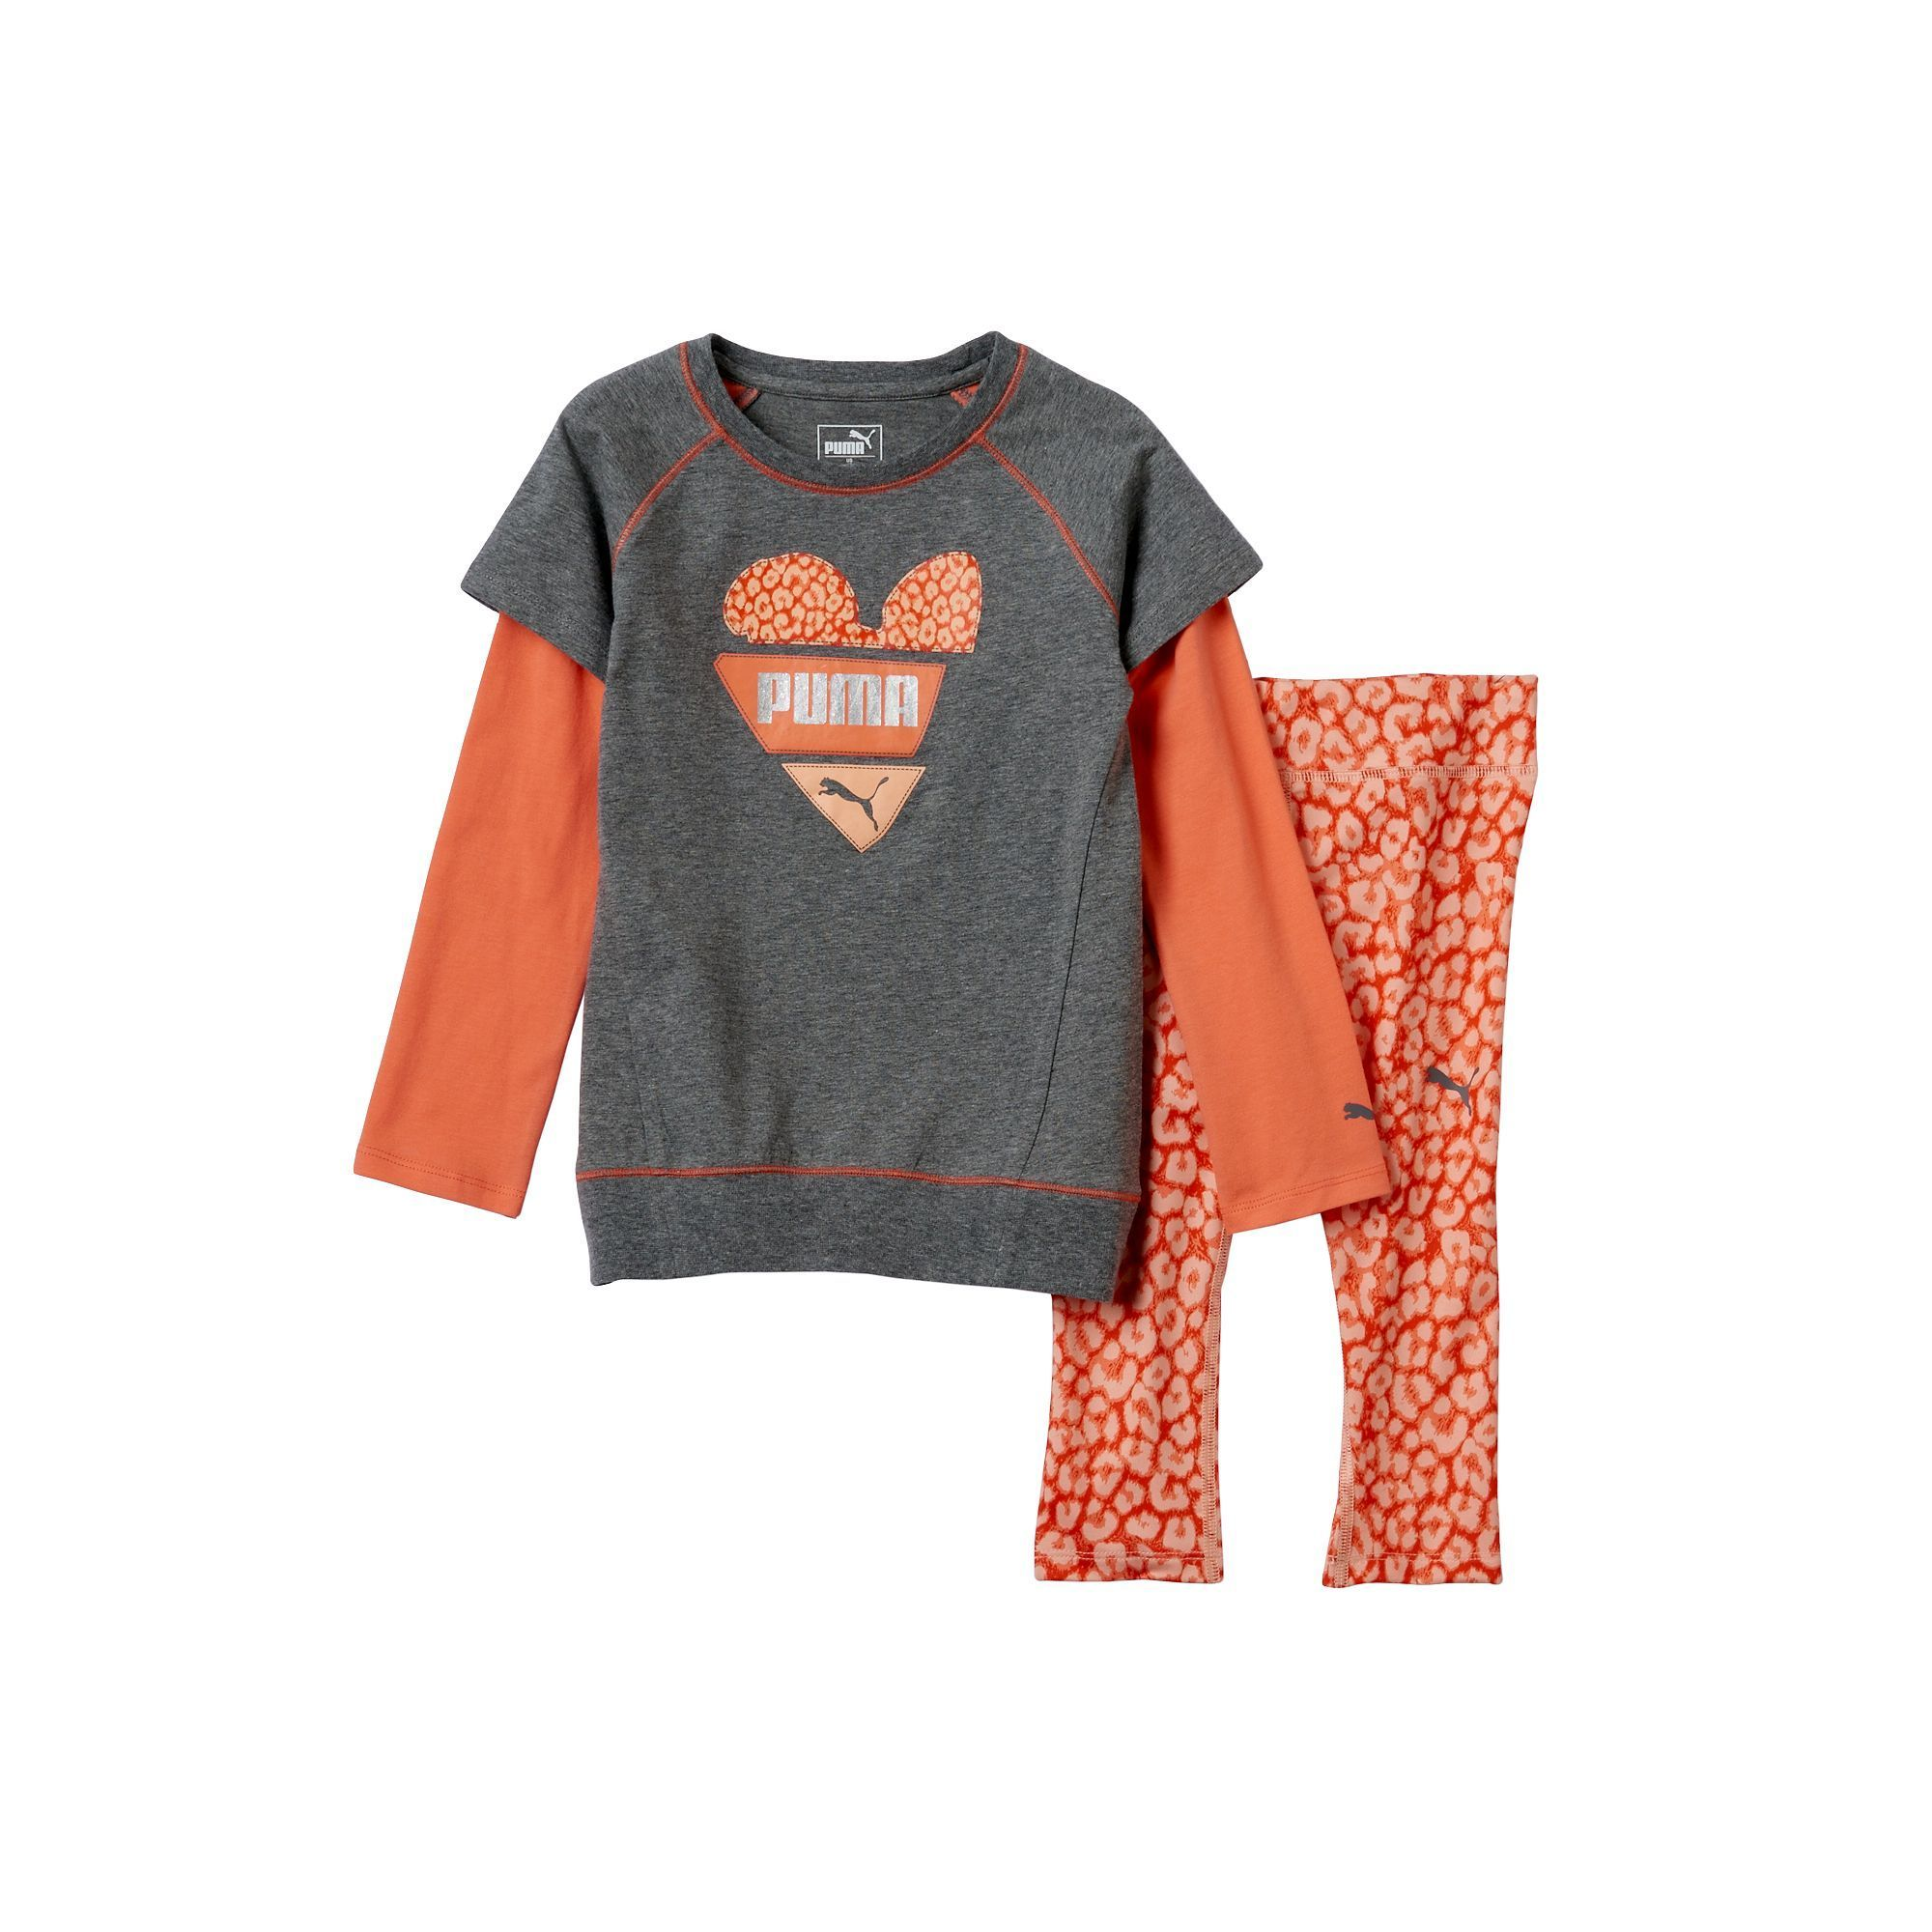 Girls 4-6x PUMA Mock-Layer Heart Tee & Animal Print Leggings Set, Size: 4, Grey Other